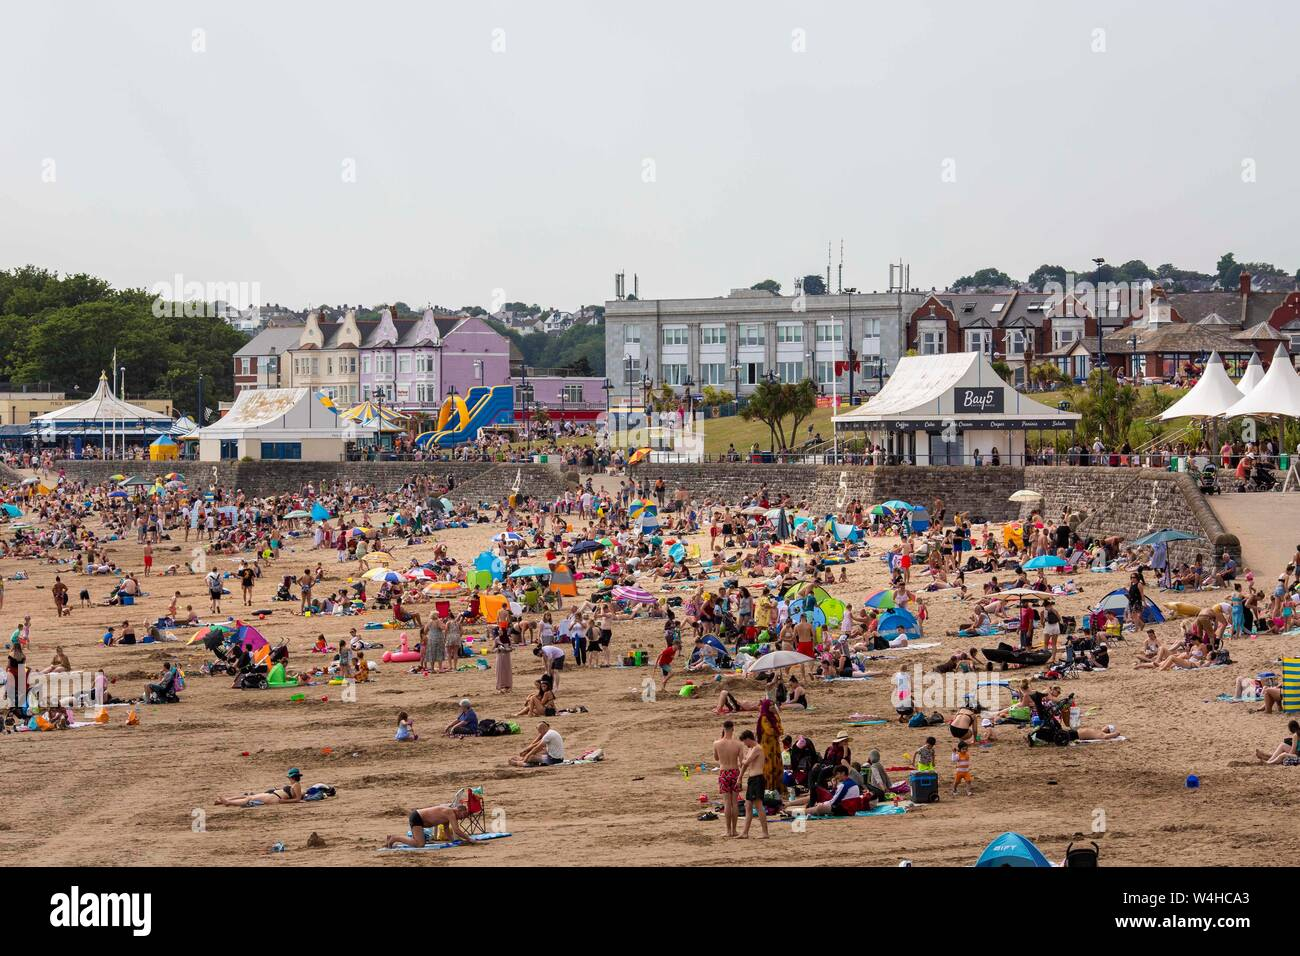 Barry, Wales, Uk. 23rd July, 2019. Barry, Wales, UK. July 23rd 2019. Revellers enjoy the heatwave at Barry Island beach. Credit: Mark Hawkins/Alamy Live News Stock Photo